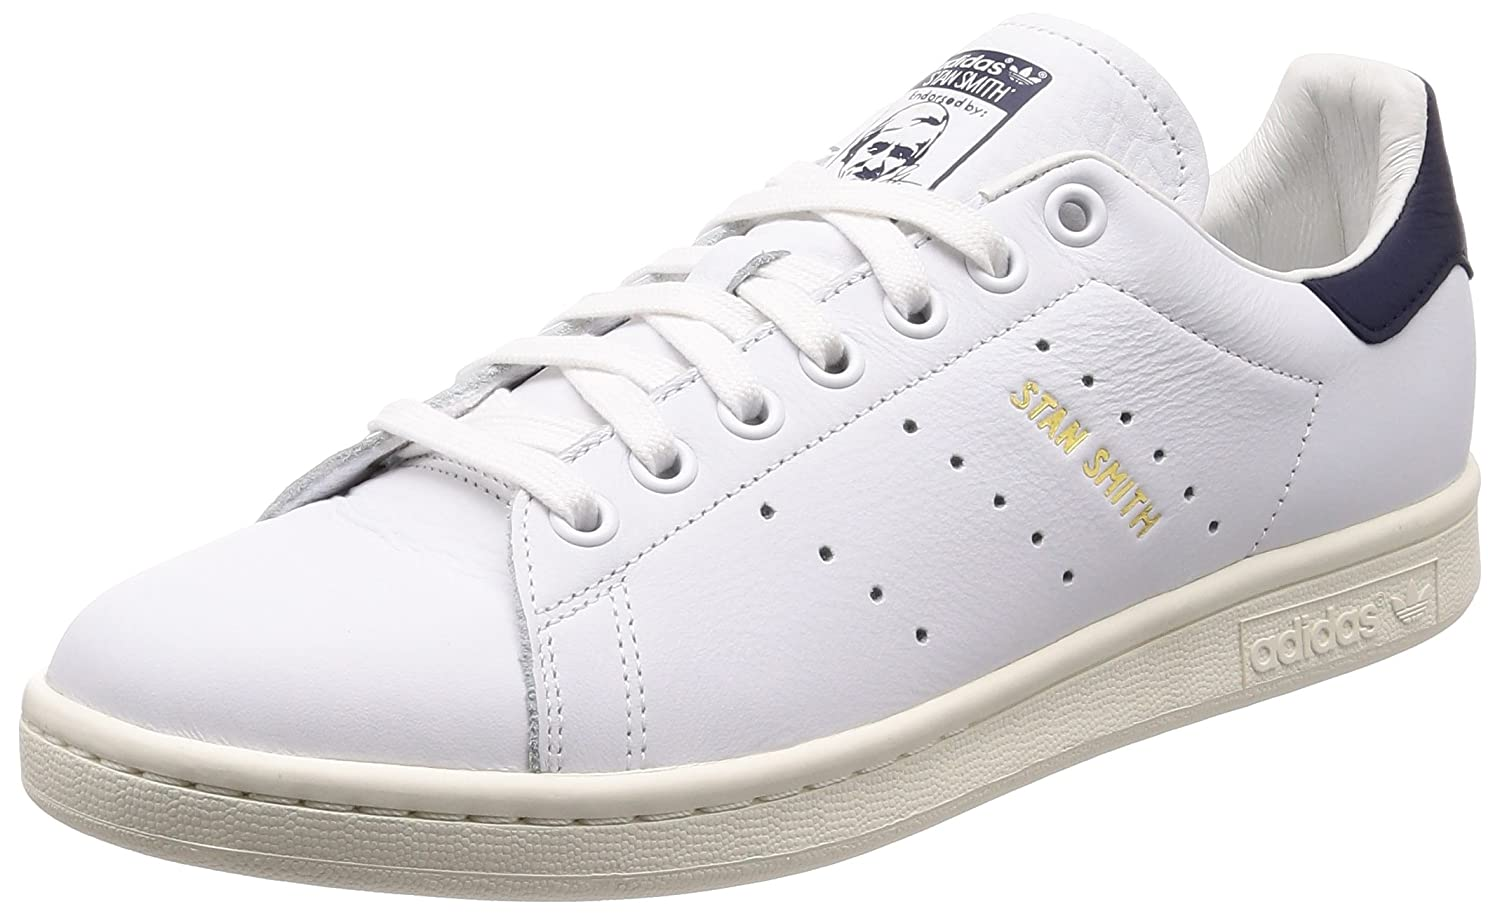 Loisirs Basket Et Sports Mode Homme Stan Adidas Smith Y1x00p